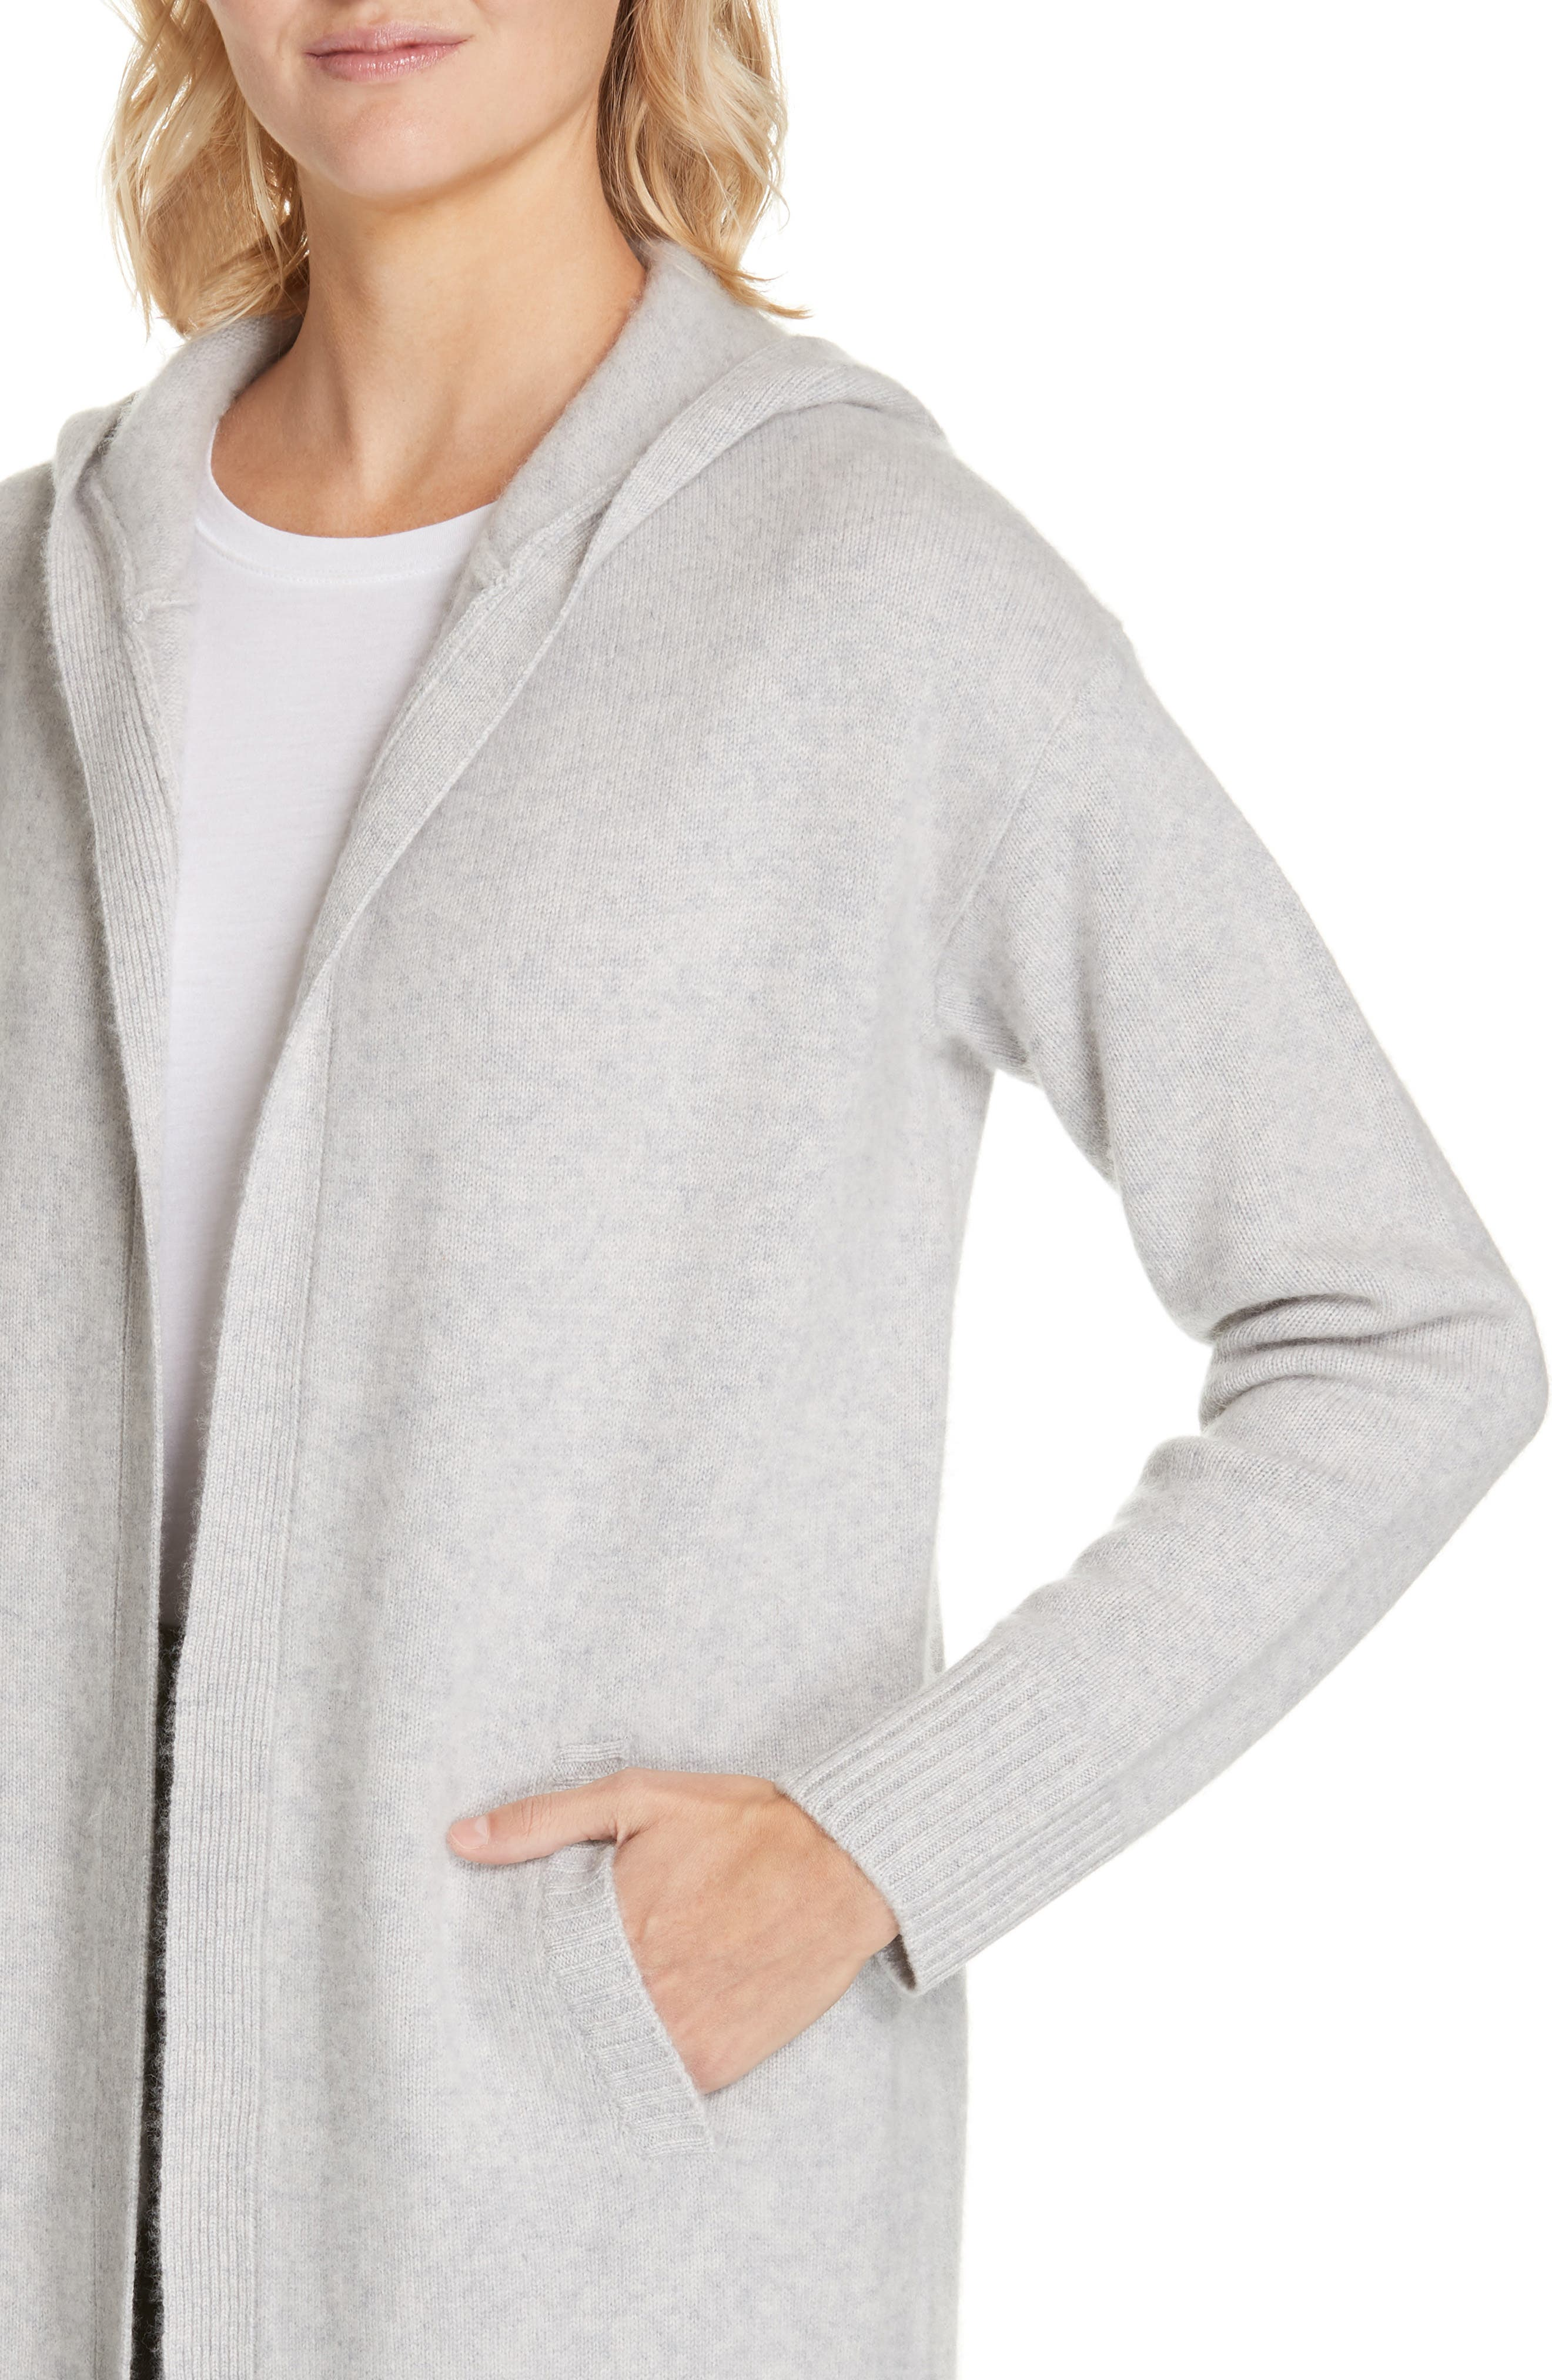 NORDSTROM SIGNATURE, Hooded Boiled Cashmere Cardigan, Alternate thumbnail 4, color, 050